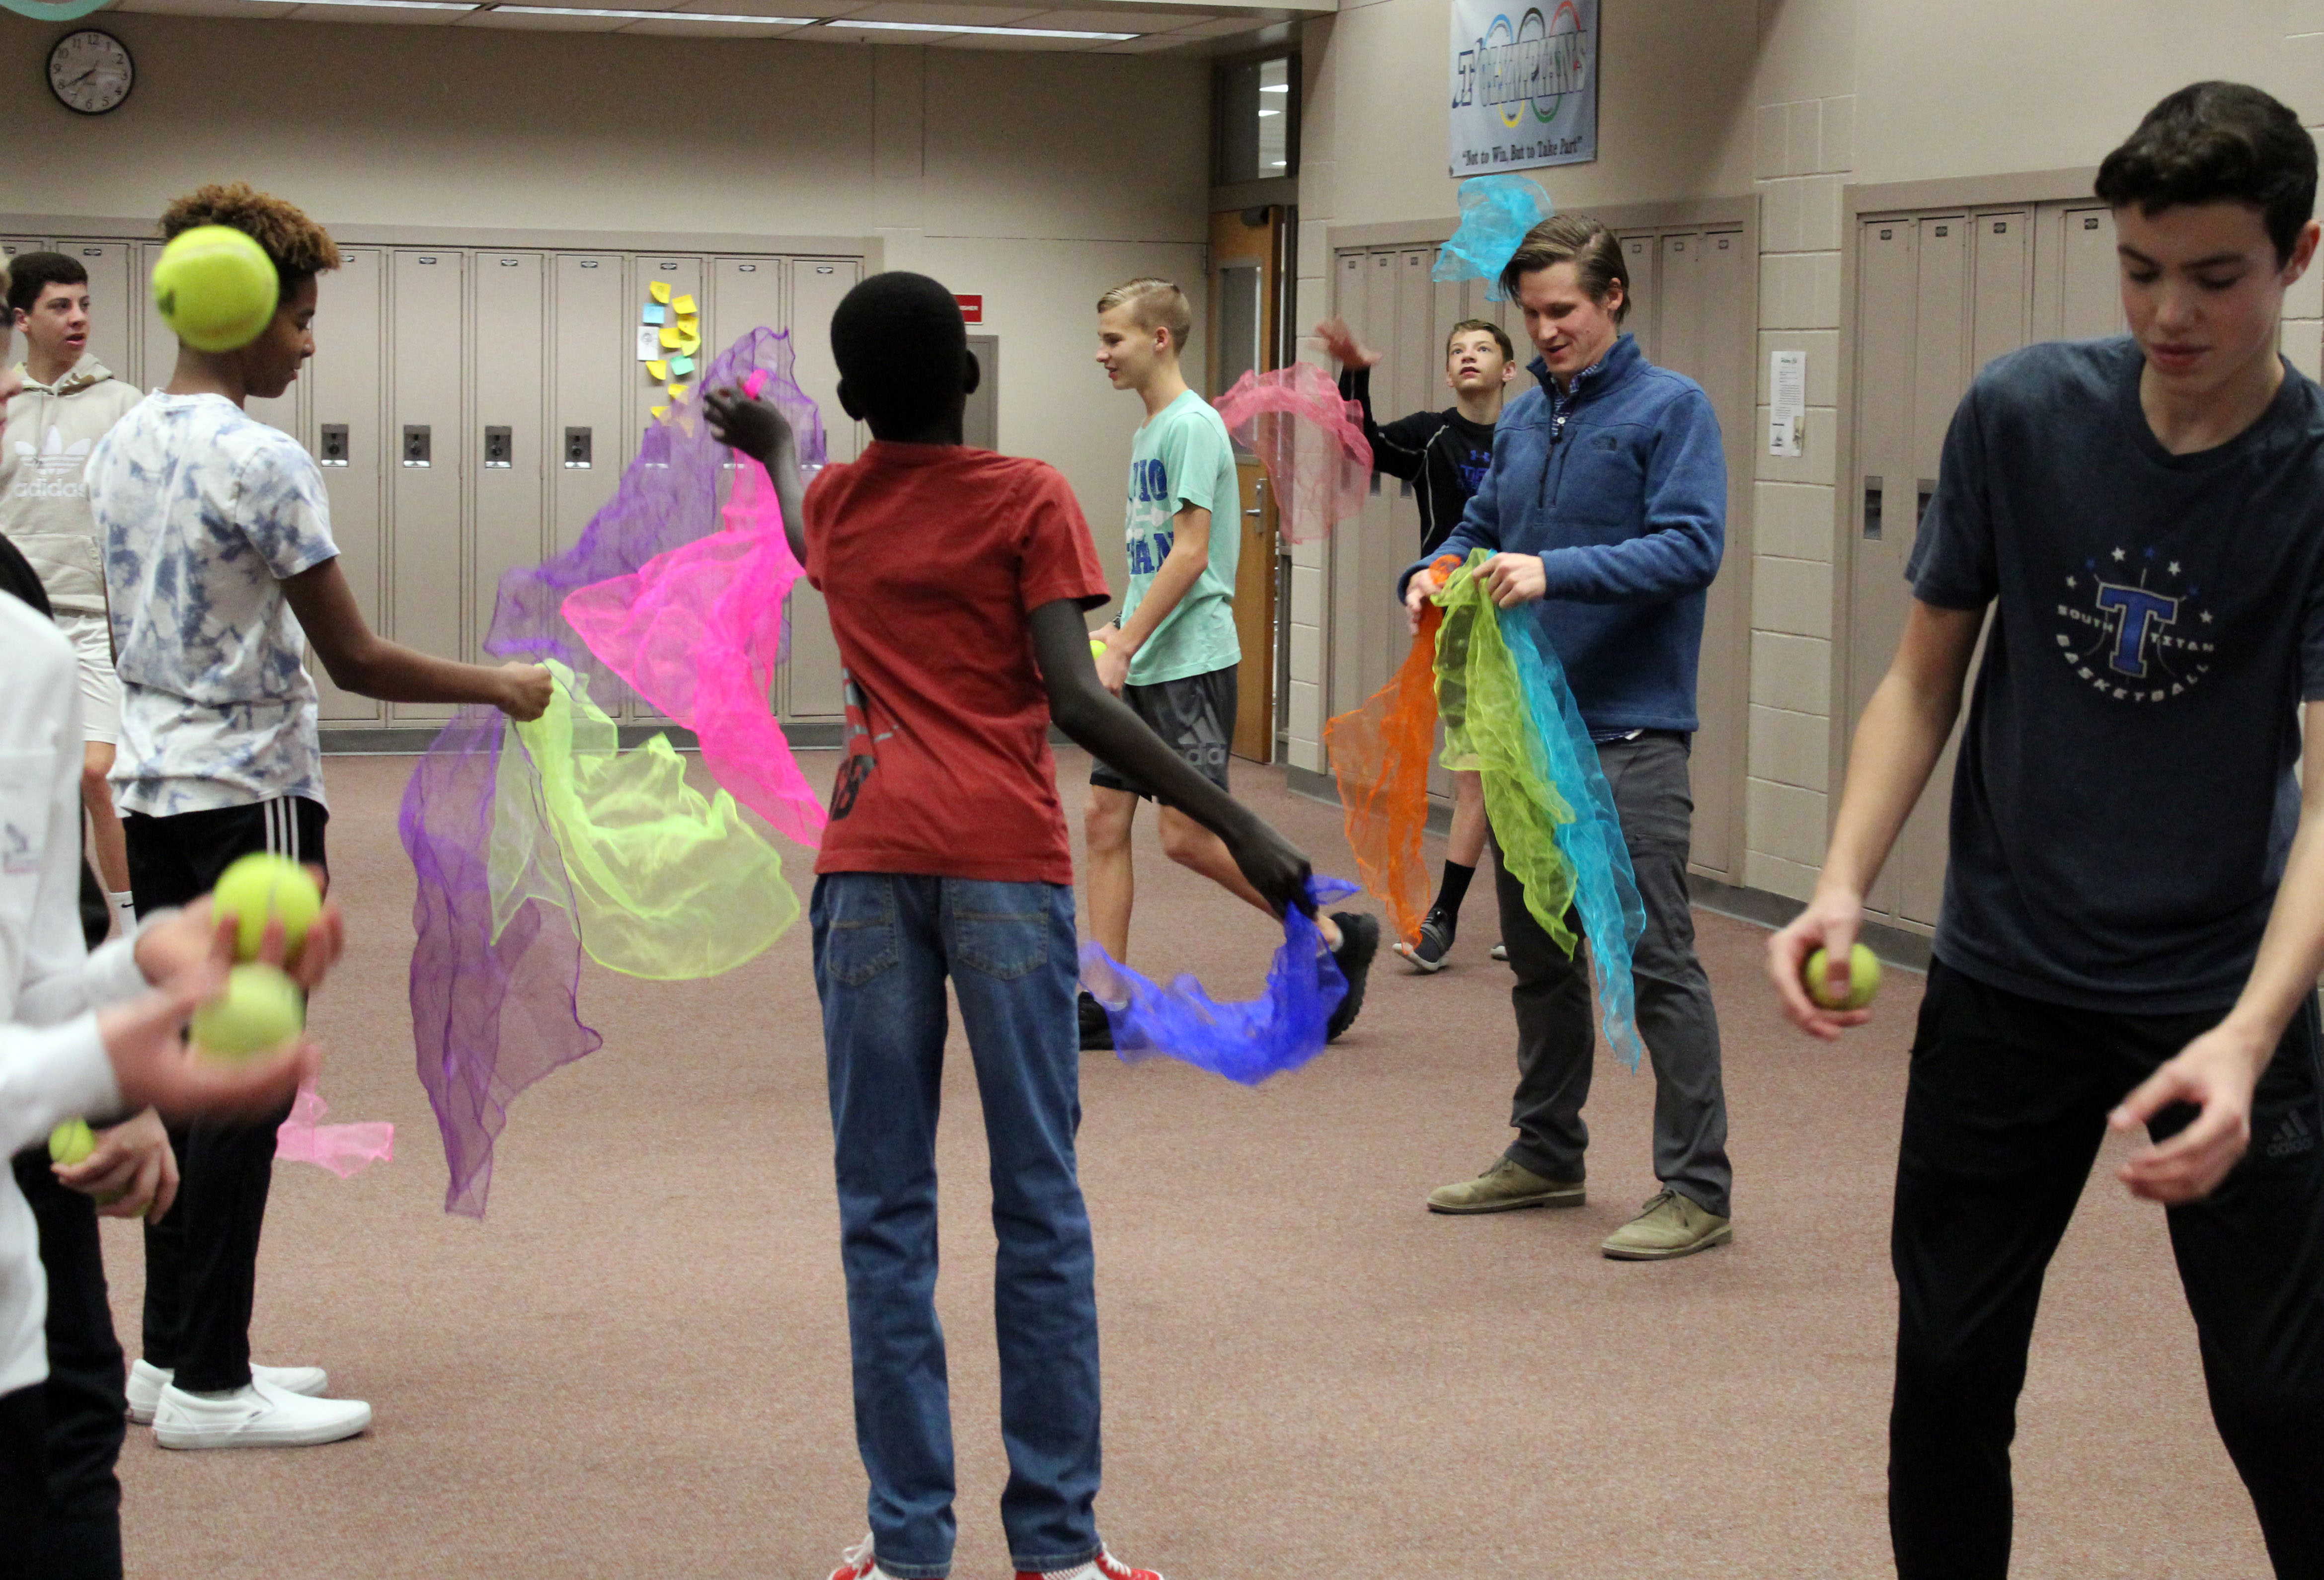 Juggling Club at Papillion Middle sharpens concentration skills, brings students together